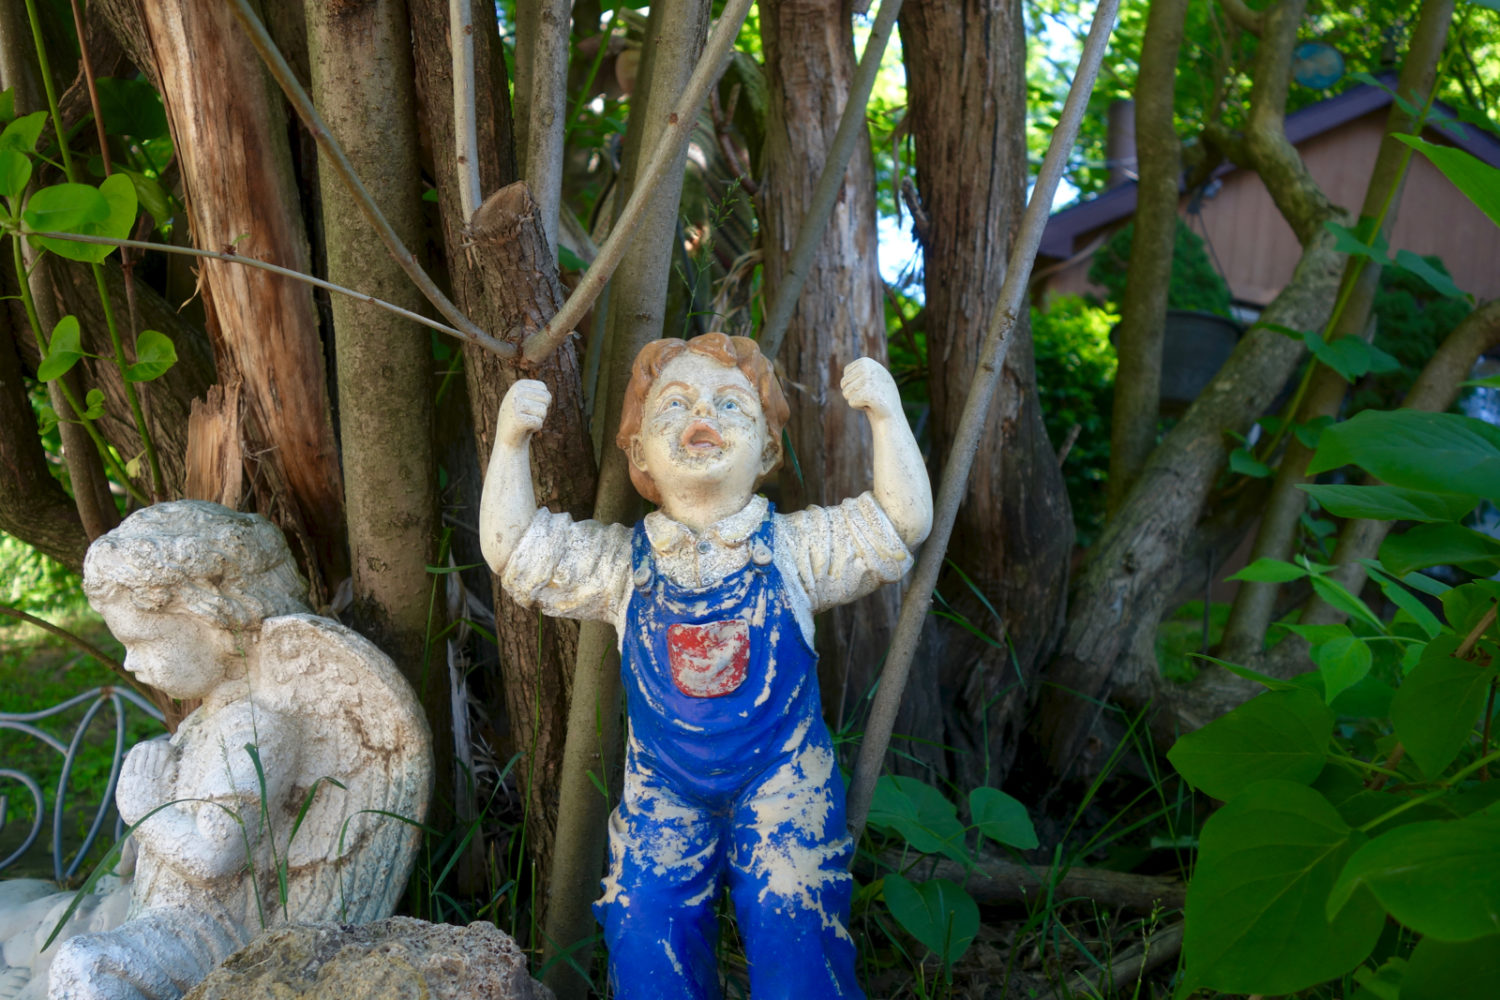 Garden figure in blue jeans in Sea Breeze neighborhood